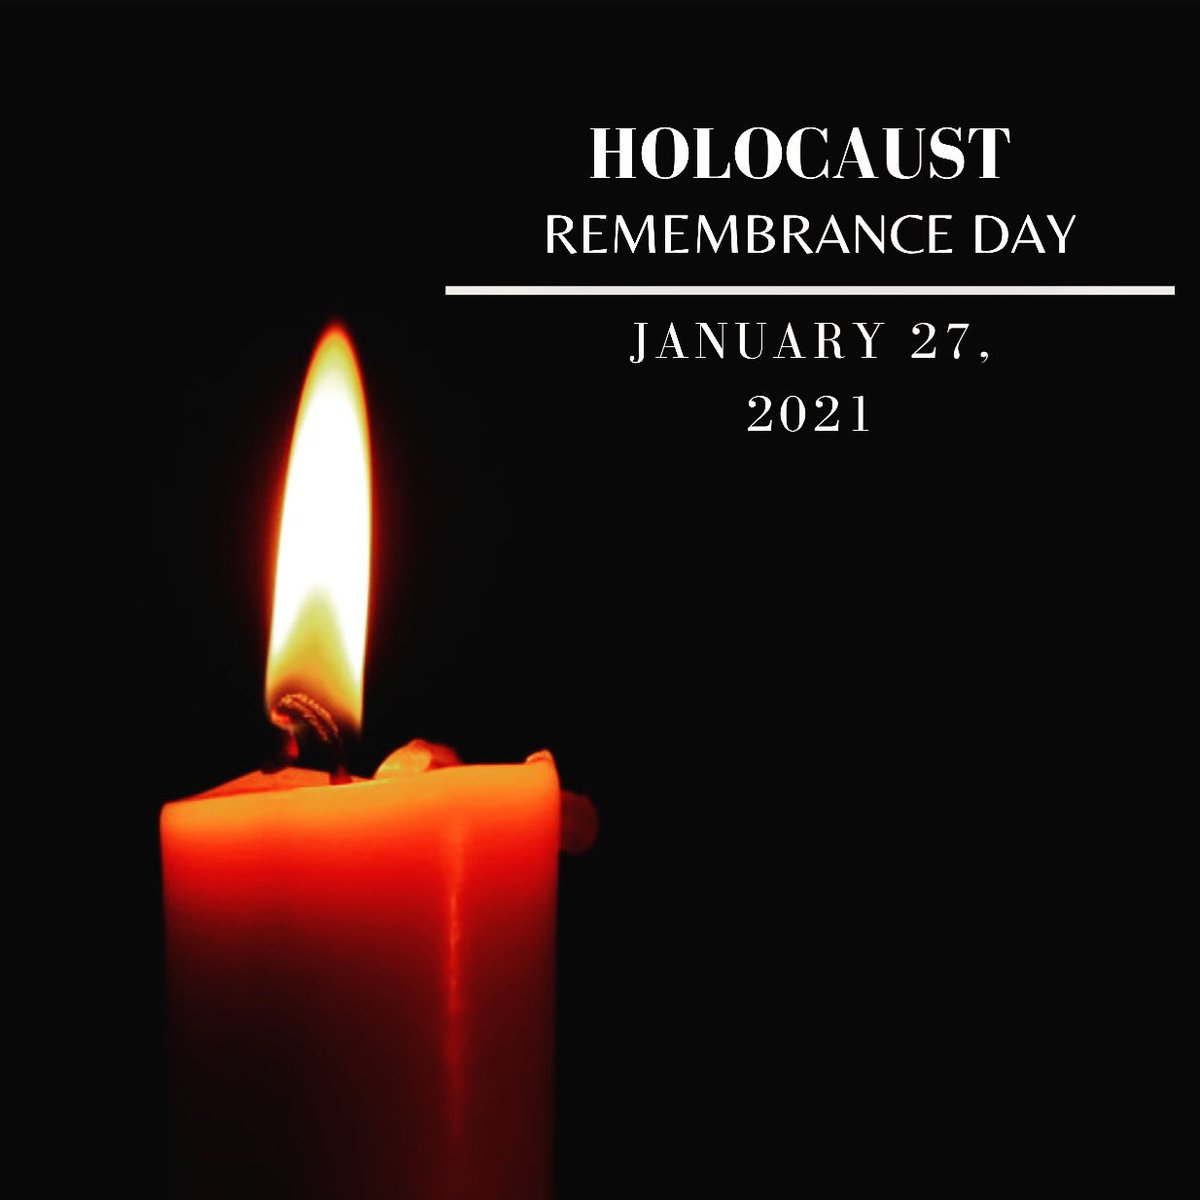 Today, on the anniversary of the liberation of Auschwitz-Birkenau, we honor & remember the 6 million Jewish victims lost in the Holocaust.   #HolocaustRemembranceDay